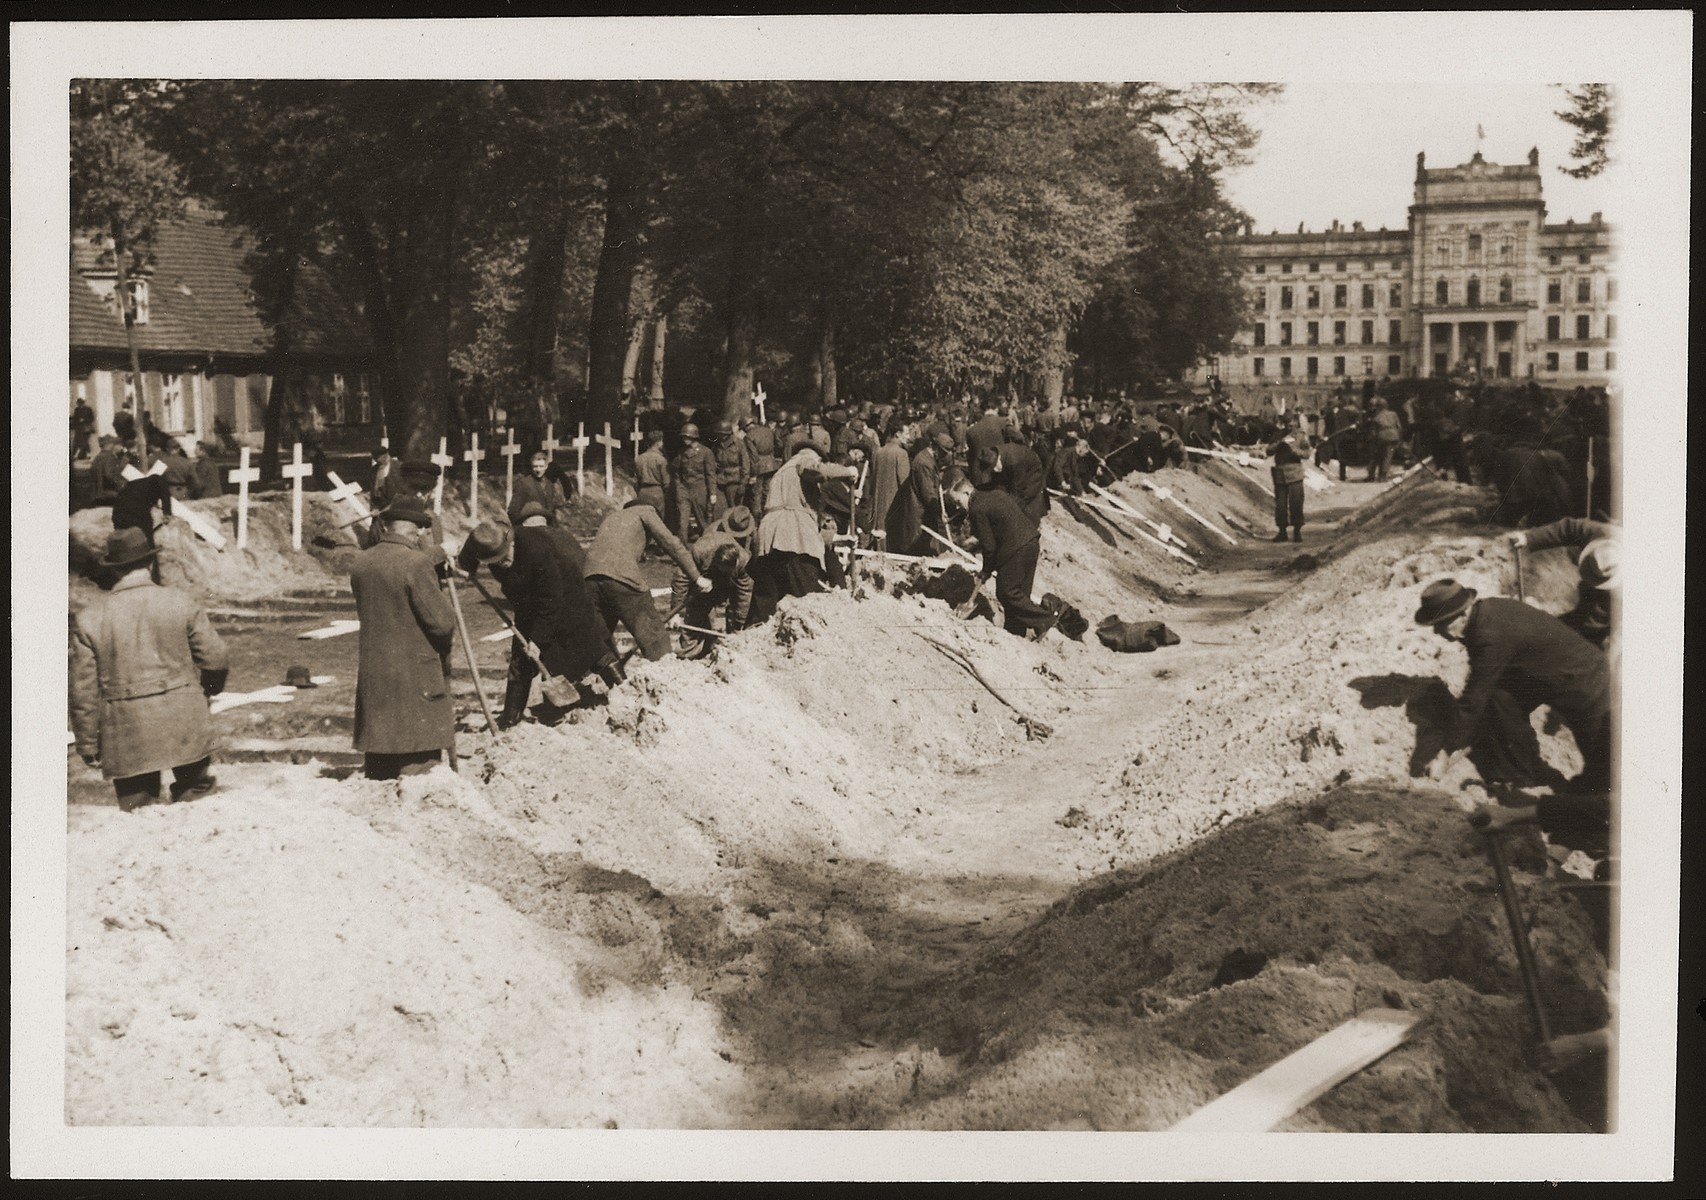 German civilians from Ludwigslust bury the corpses of prisoners killed in the Woebbelin concentration camp on the palace grounds of the Archduke of Mecklenburg.